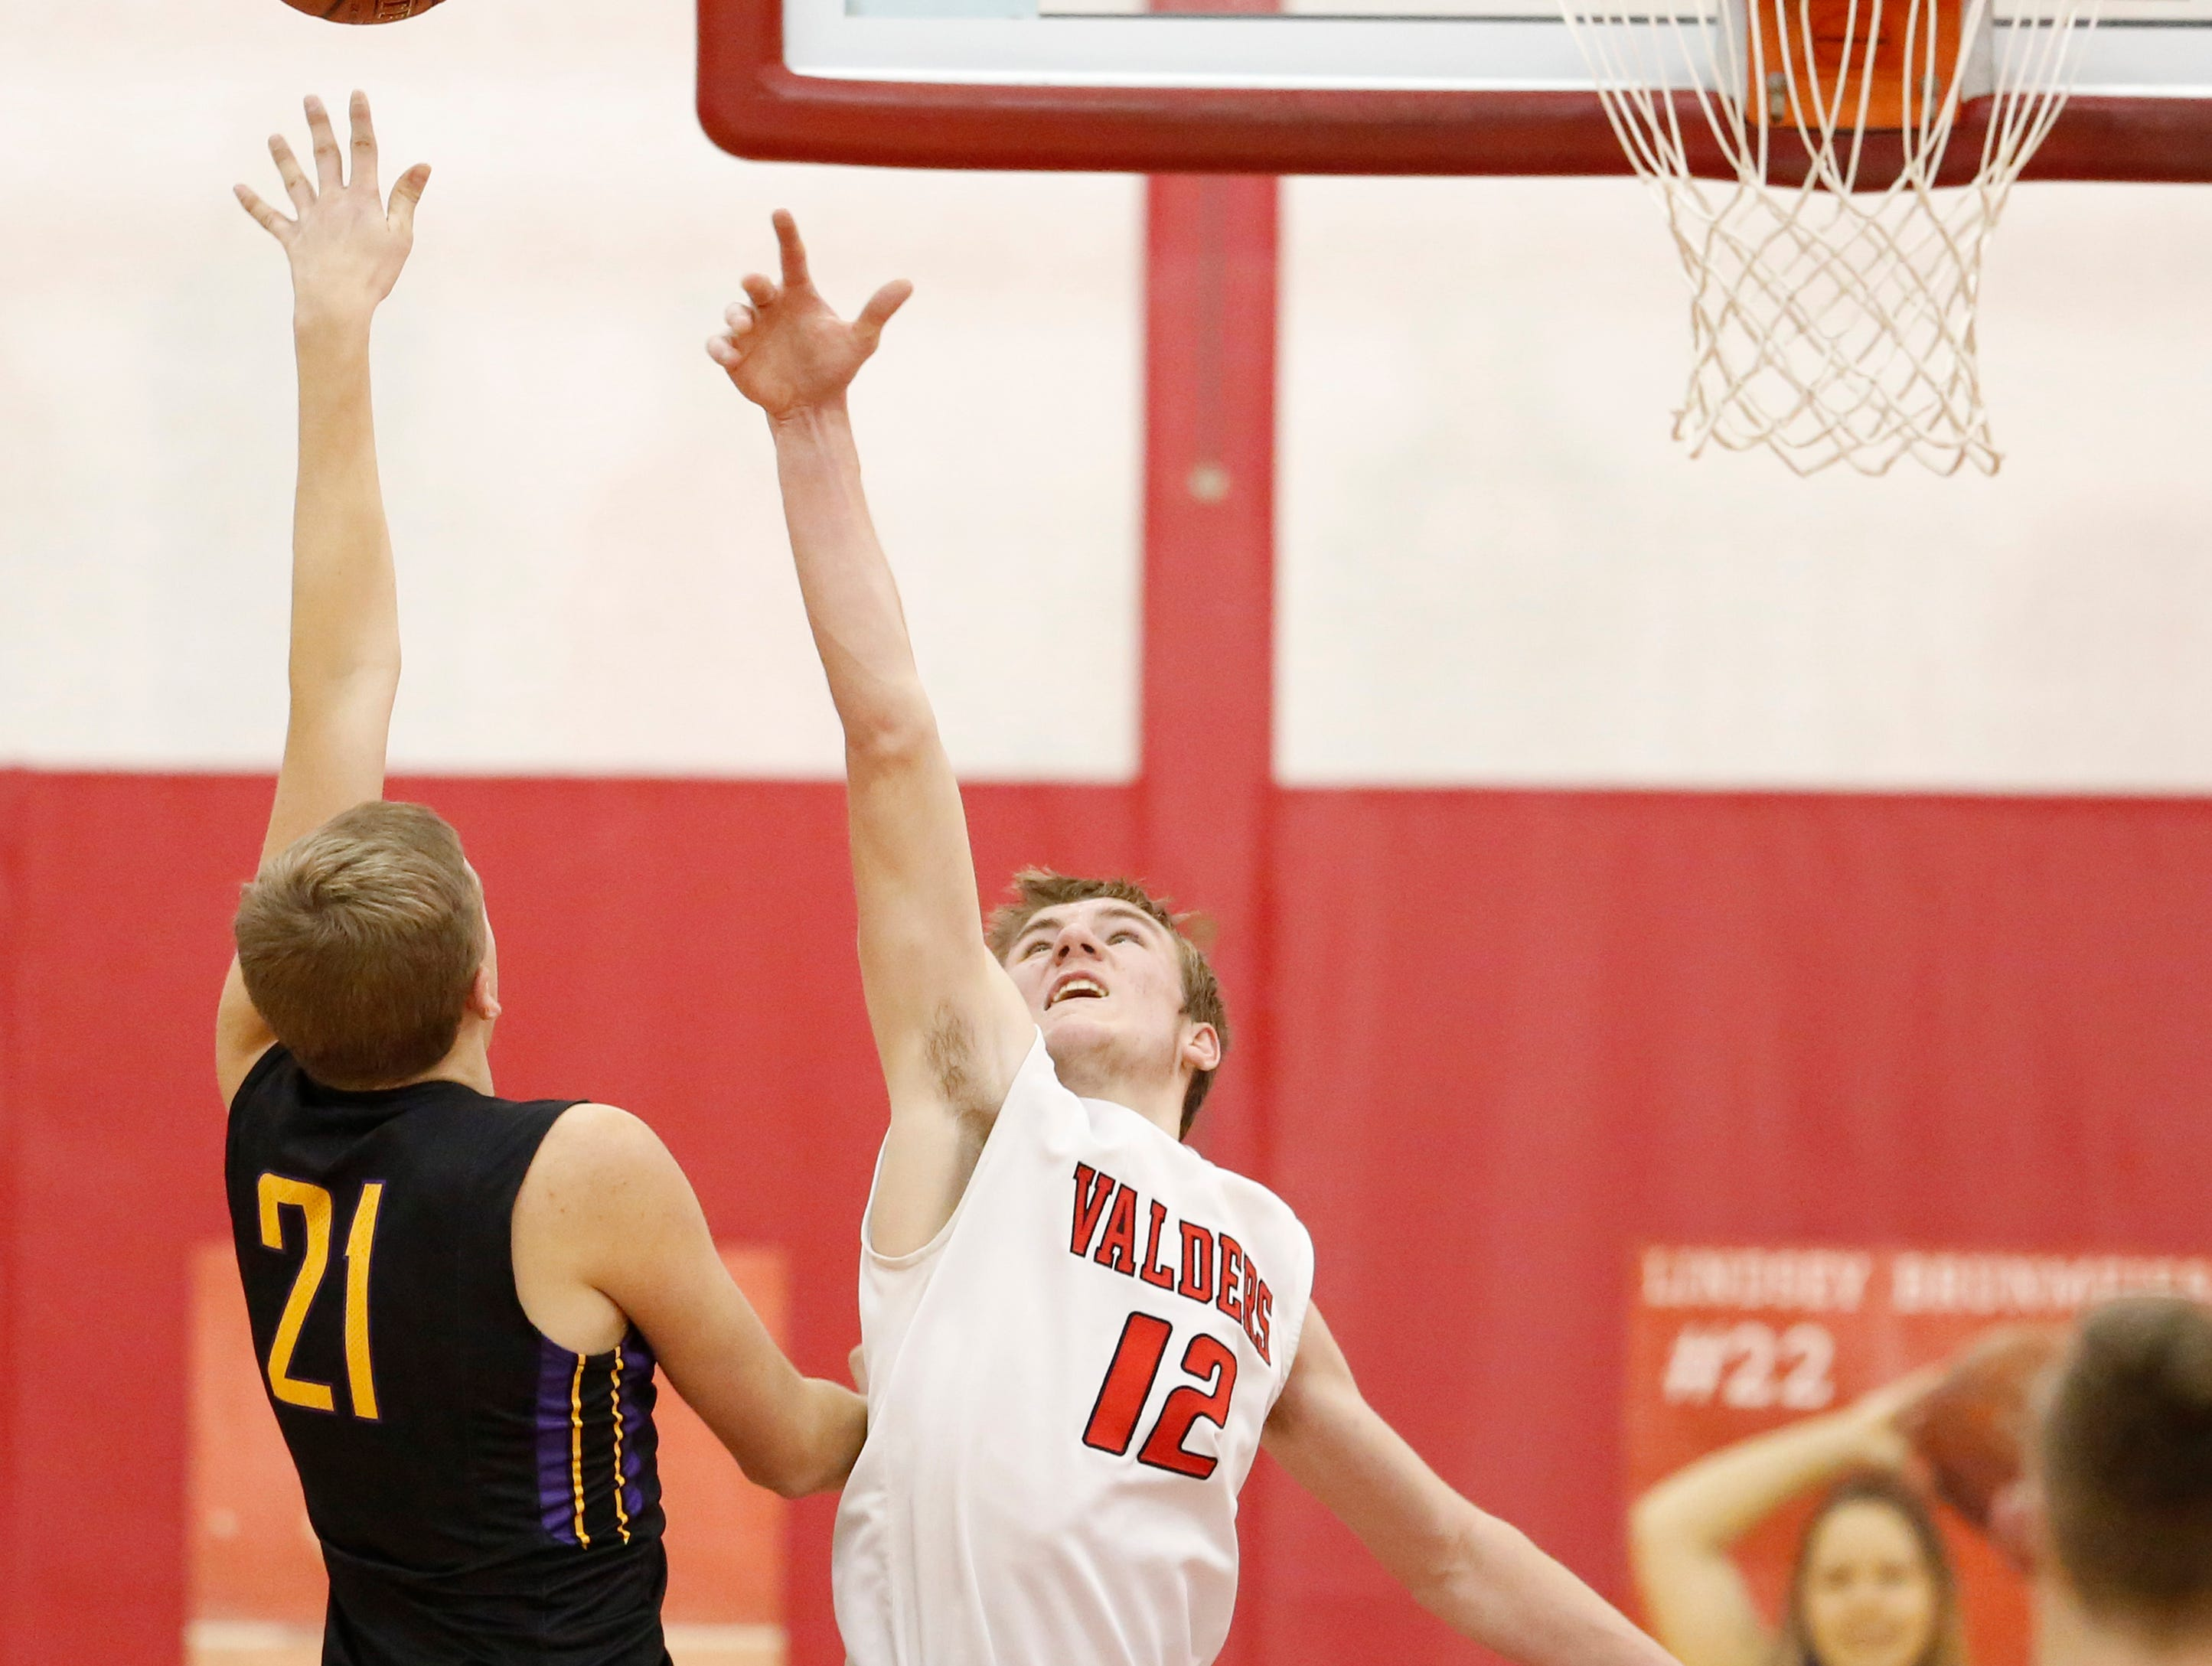 Sheboygan Falls' Connor Spielvogel (21) puts up a shot against Valders Trevor Leist (12) at Valders High School Friday, February 8, 2019, in Valders, Wis. Joshua Clark/USA TODAY NETWORK-Wisconsin